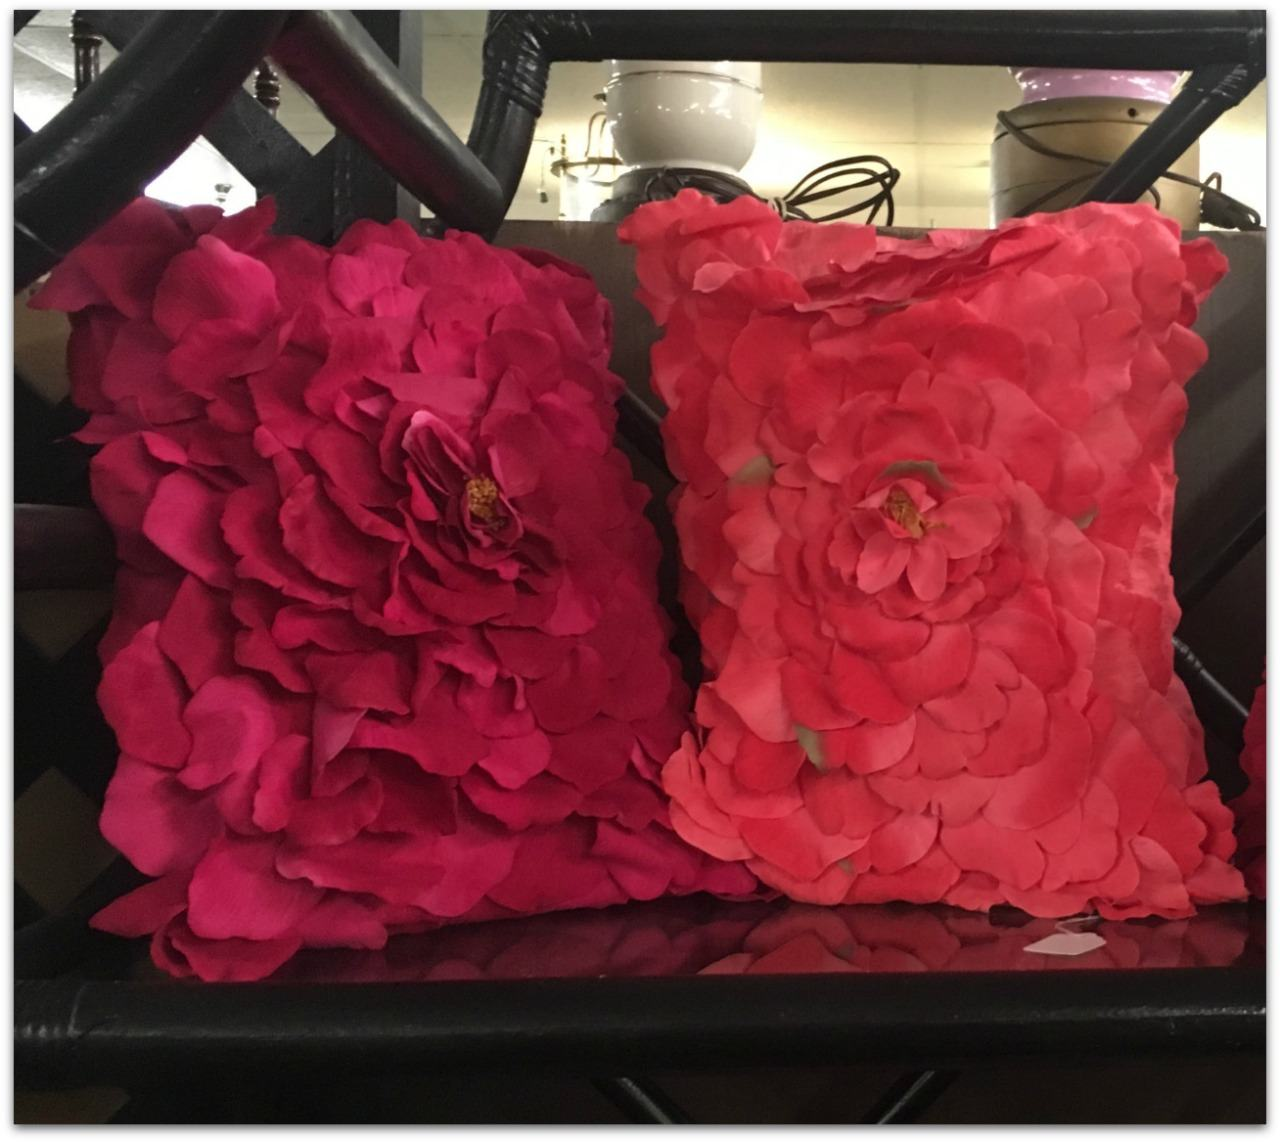 Rose Petal Pillows